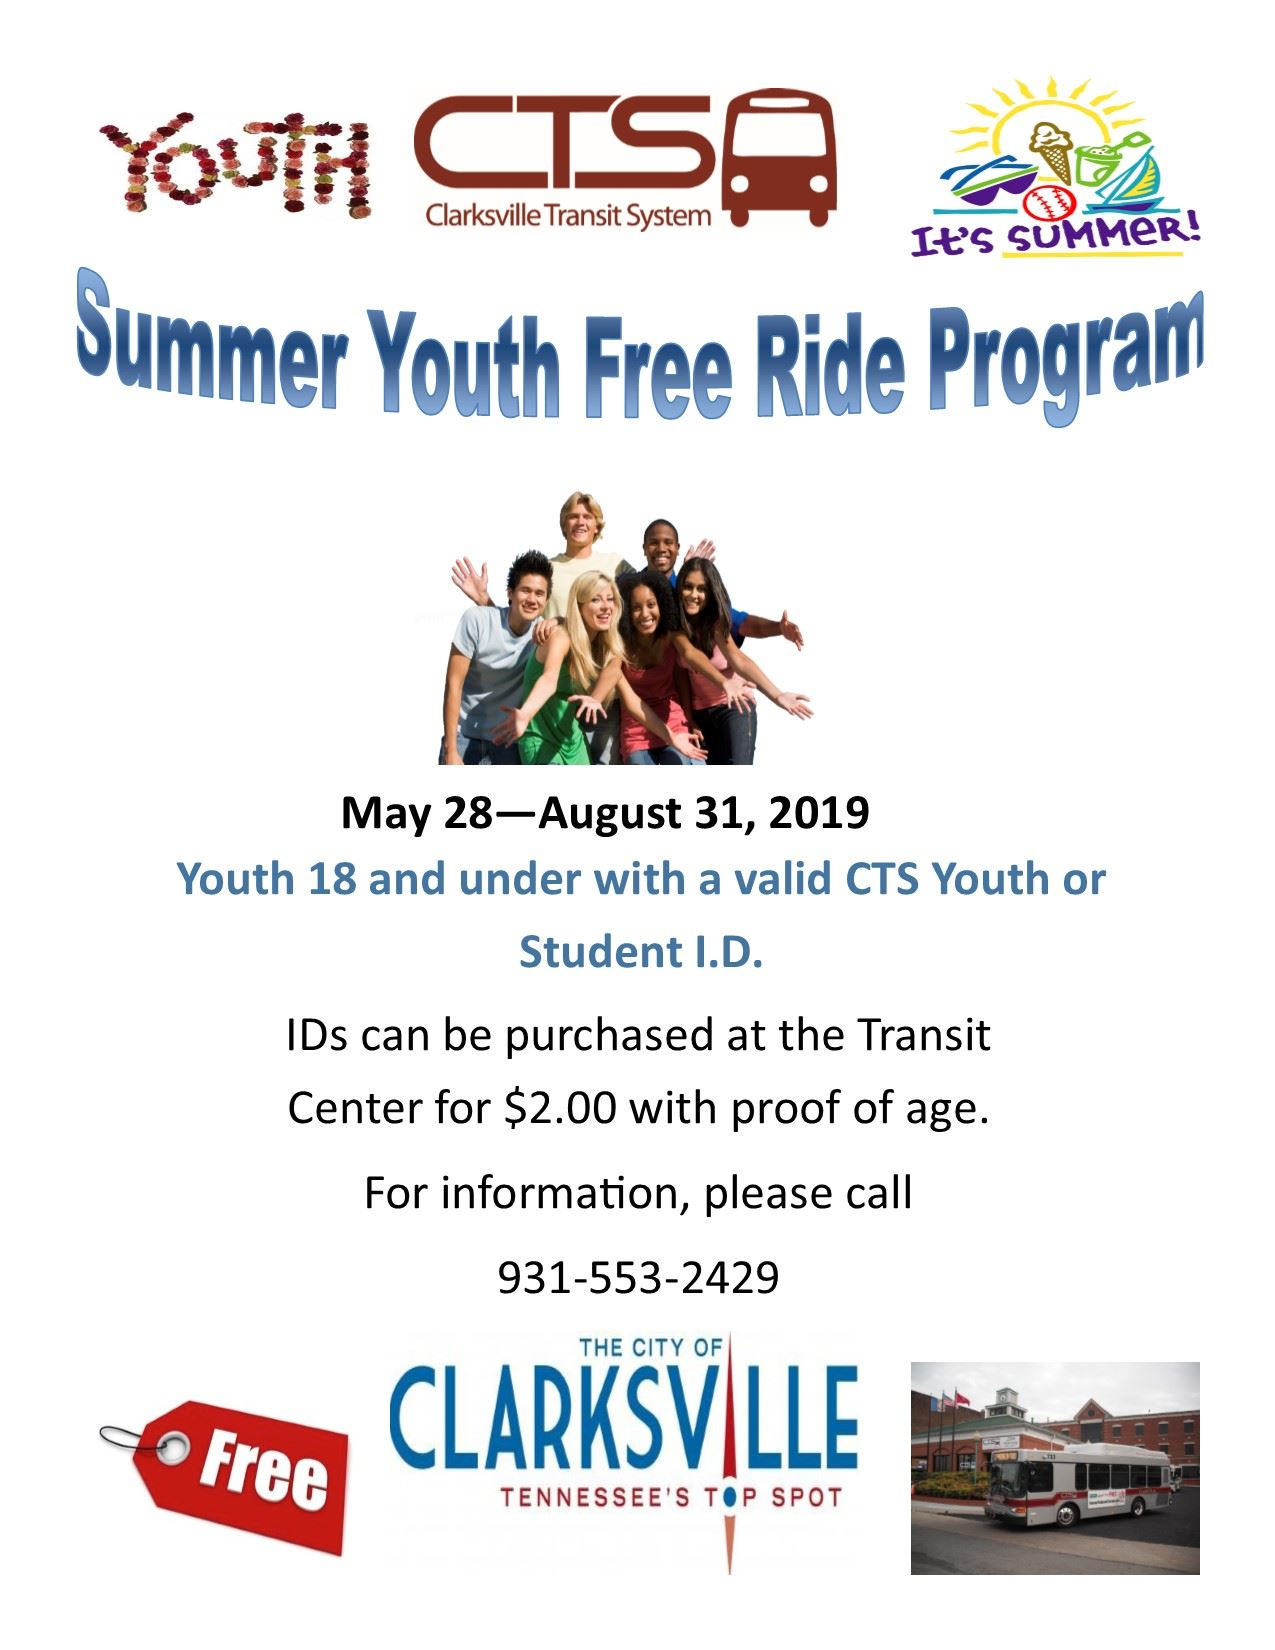 2019 Youth free ride program flyer